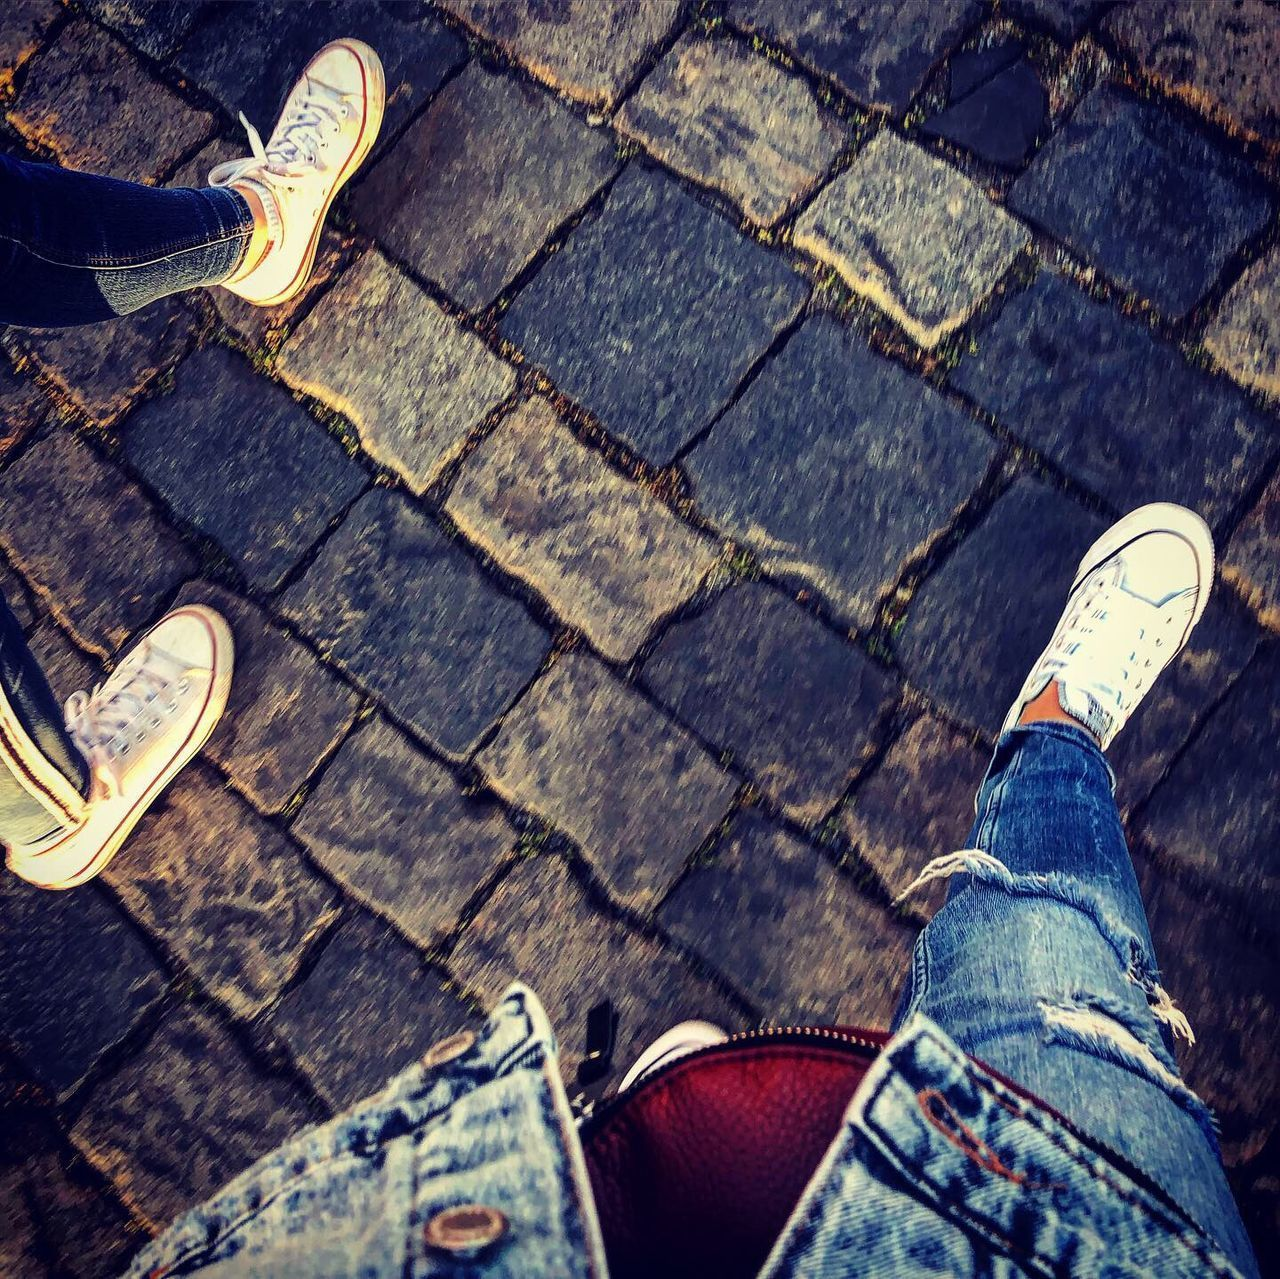 low section, shoe, human leg, human body part, body part, footpath, jeans, one person, personal perspective, street, real people, casual clothing, high angle view, lifestyles, city, leisure activity, standing, sidewalk, men, cobblestone, outdoors, paving stone, human limb, human foot